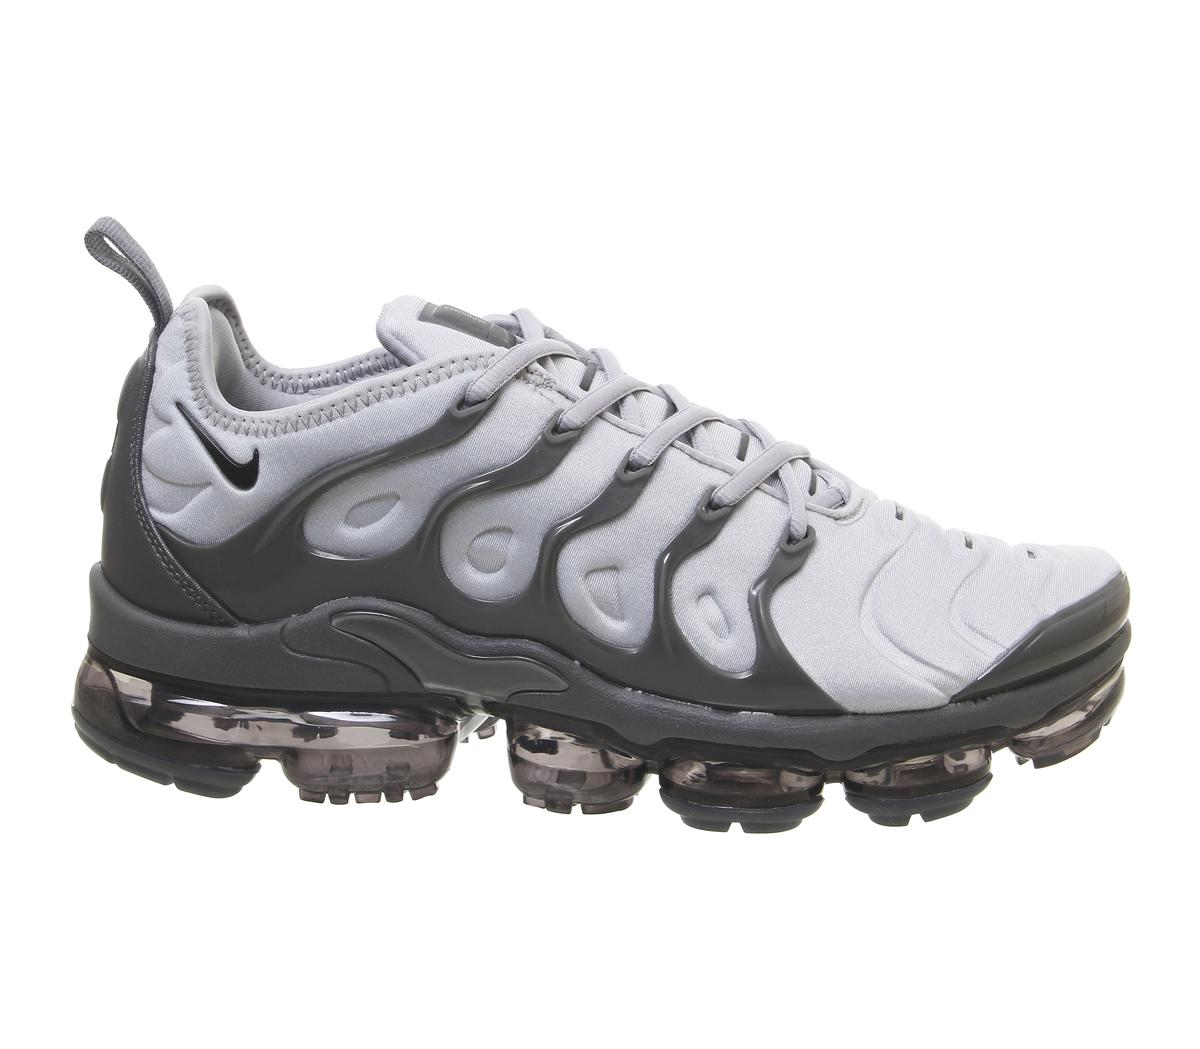 106f5cd67de84 Lyst - Nike Air Vapormax Plus Trainers in Gray for Men